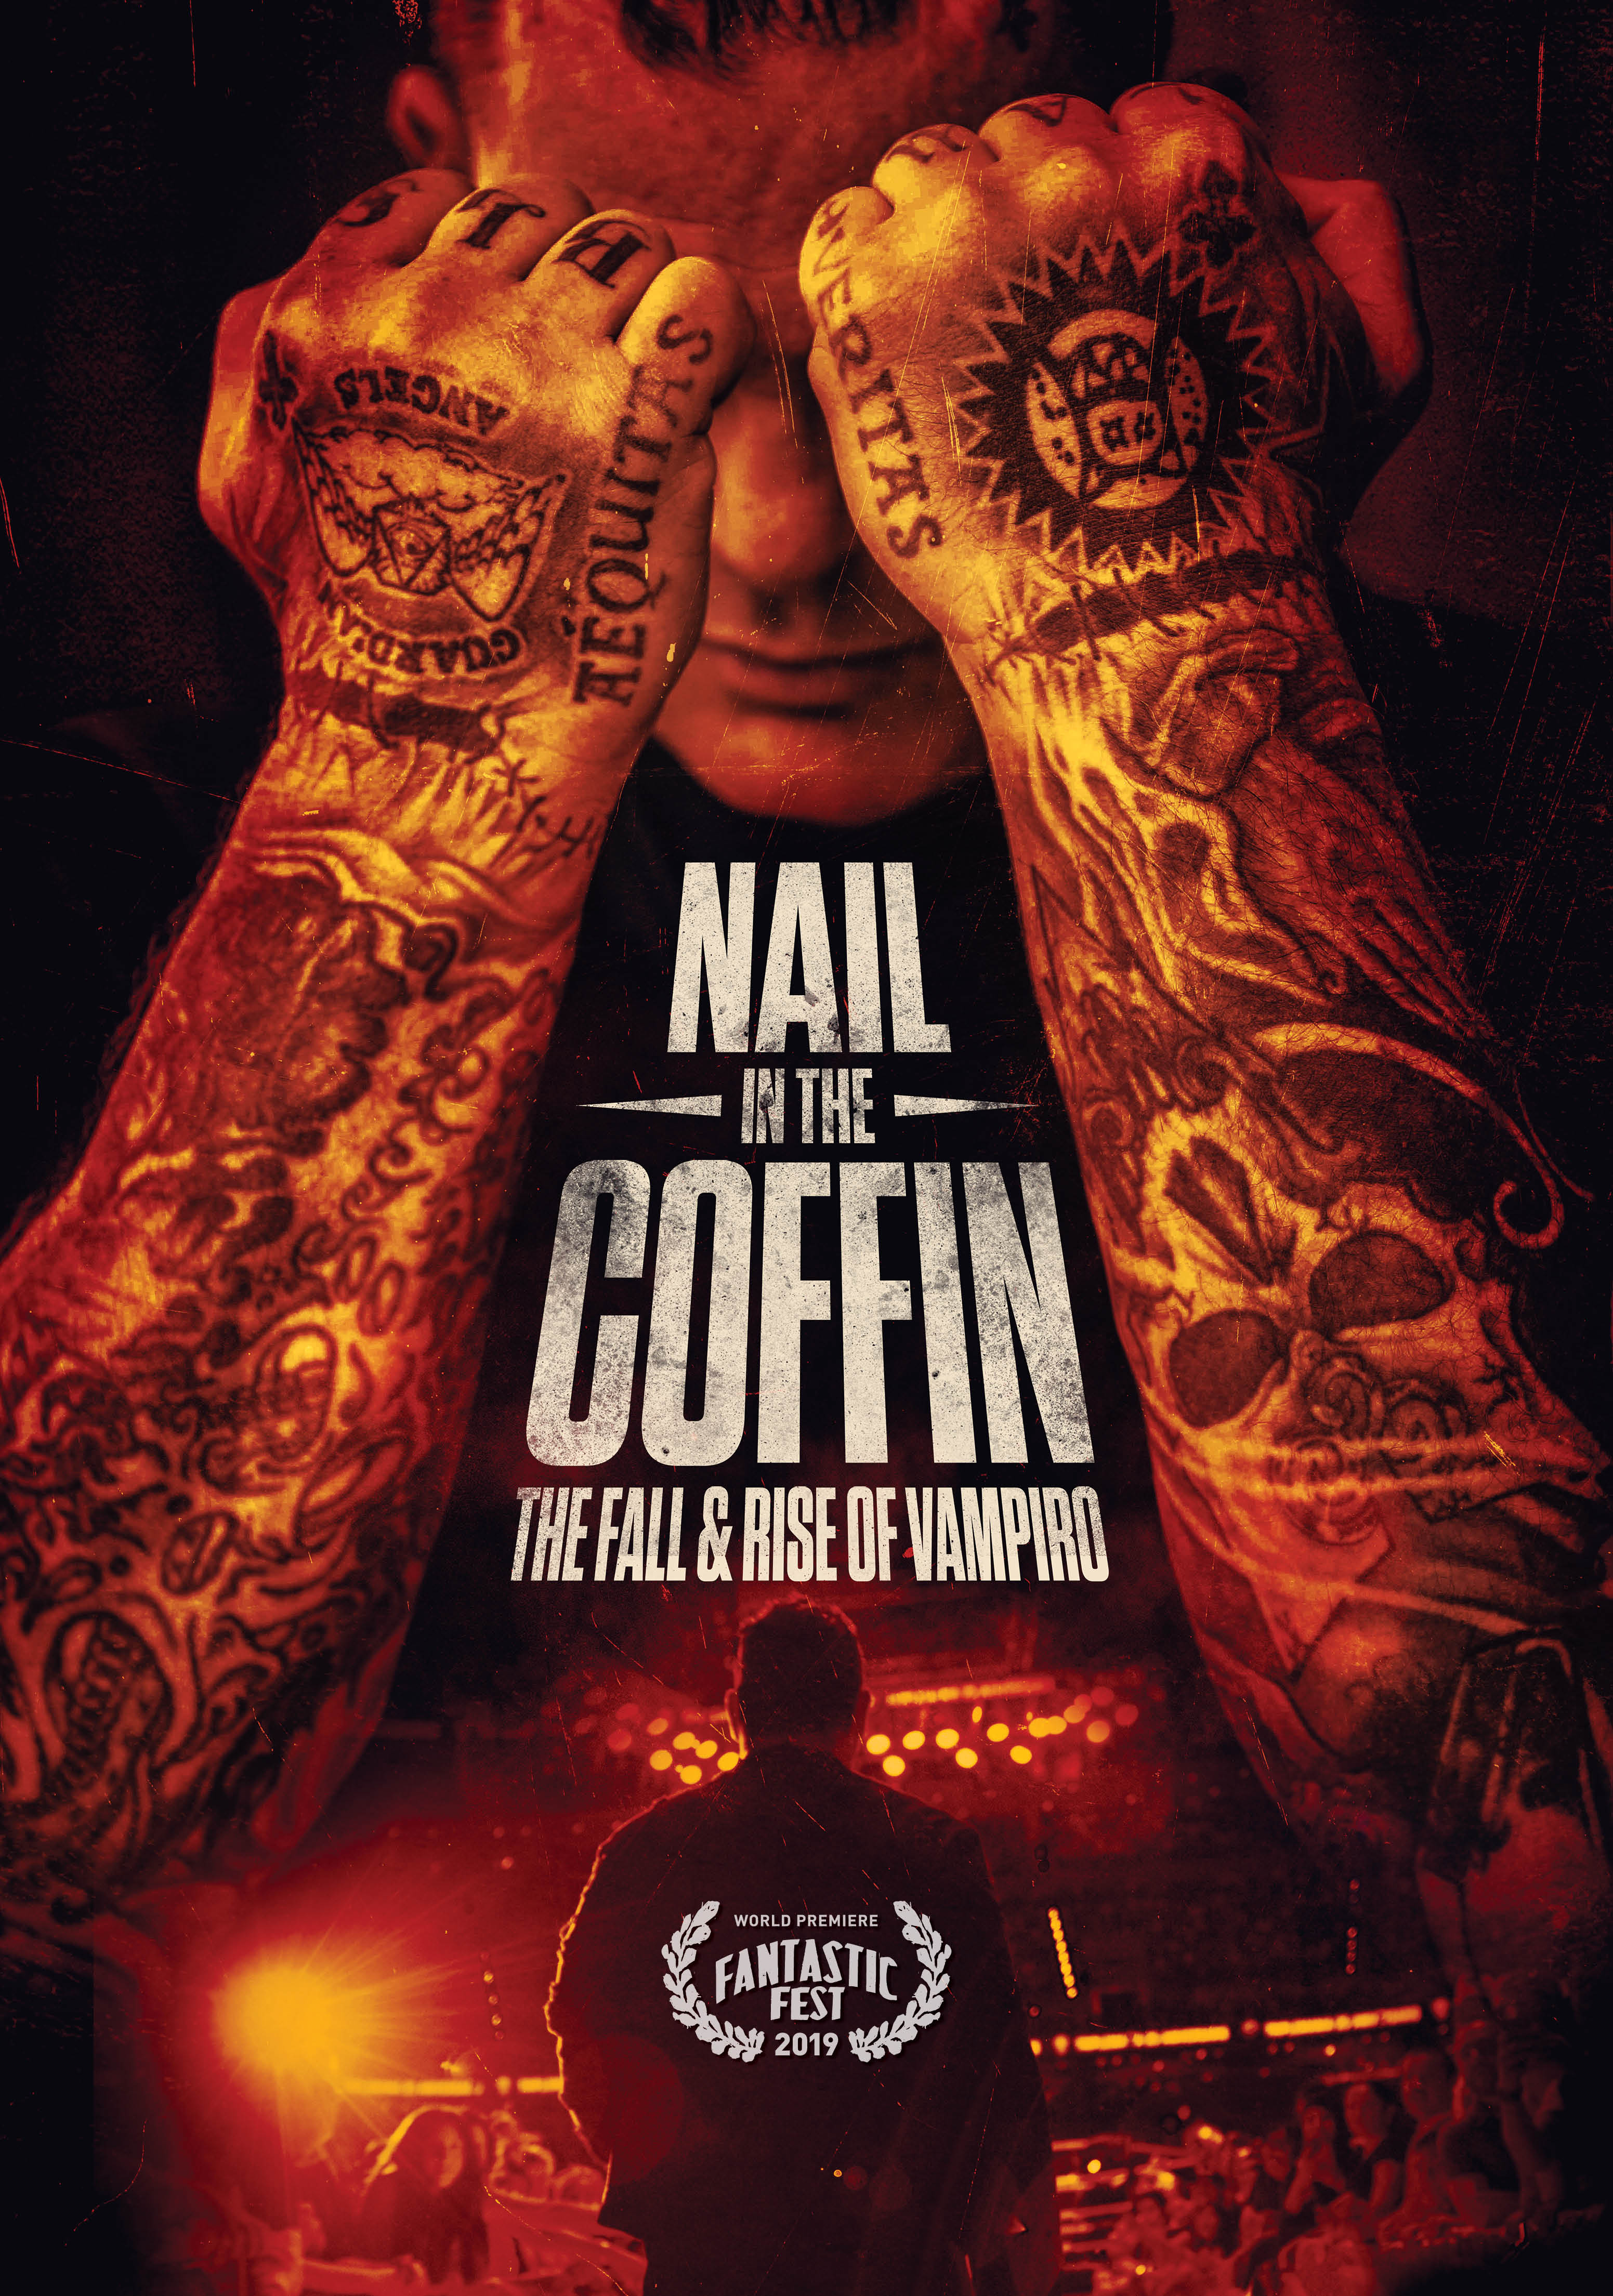 Amber Simpson Videos nail in the coffin' trailer documents the fall and rise of